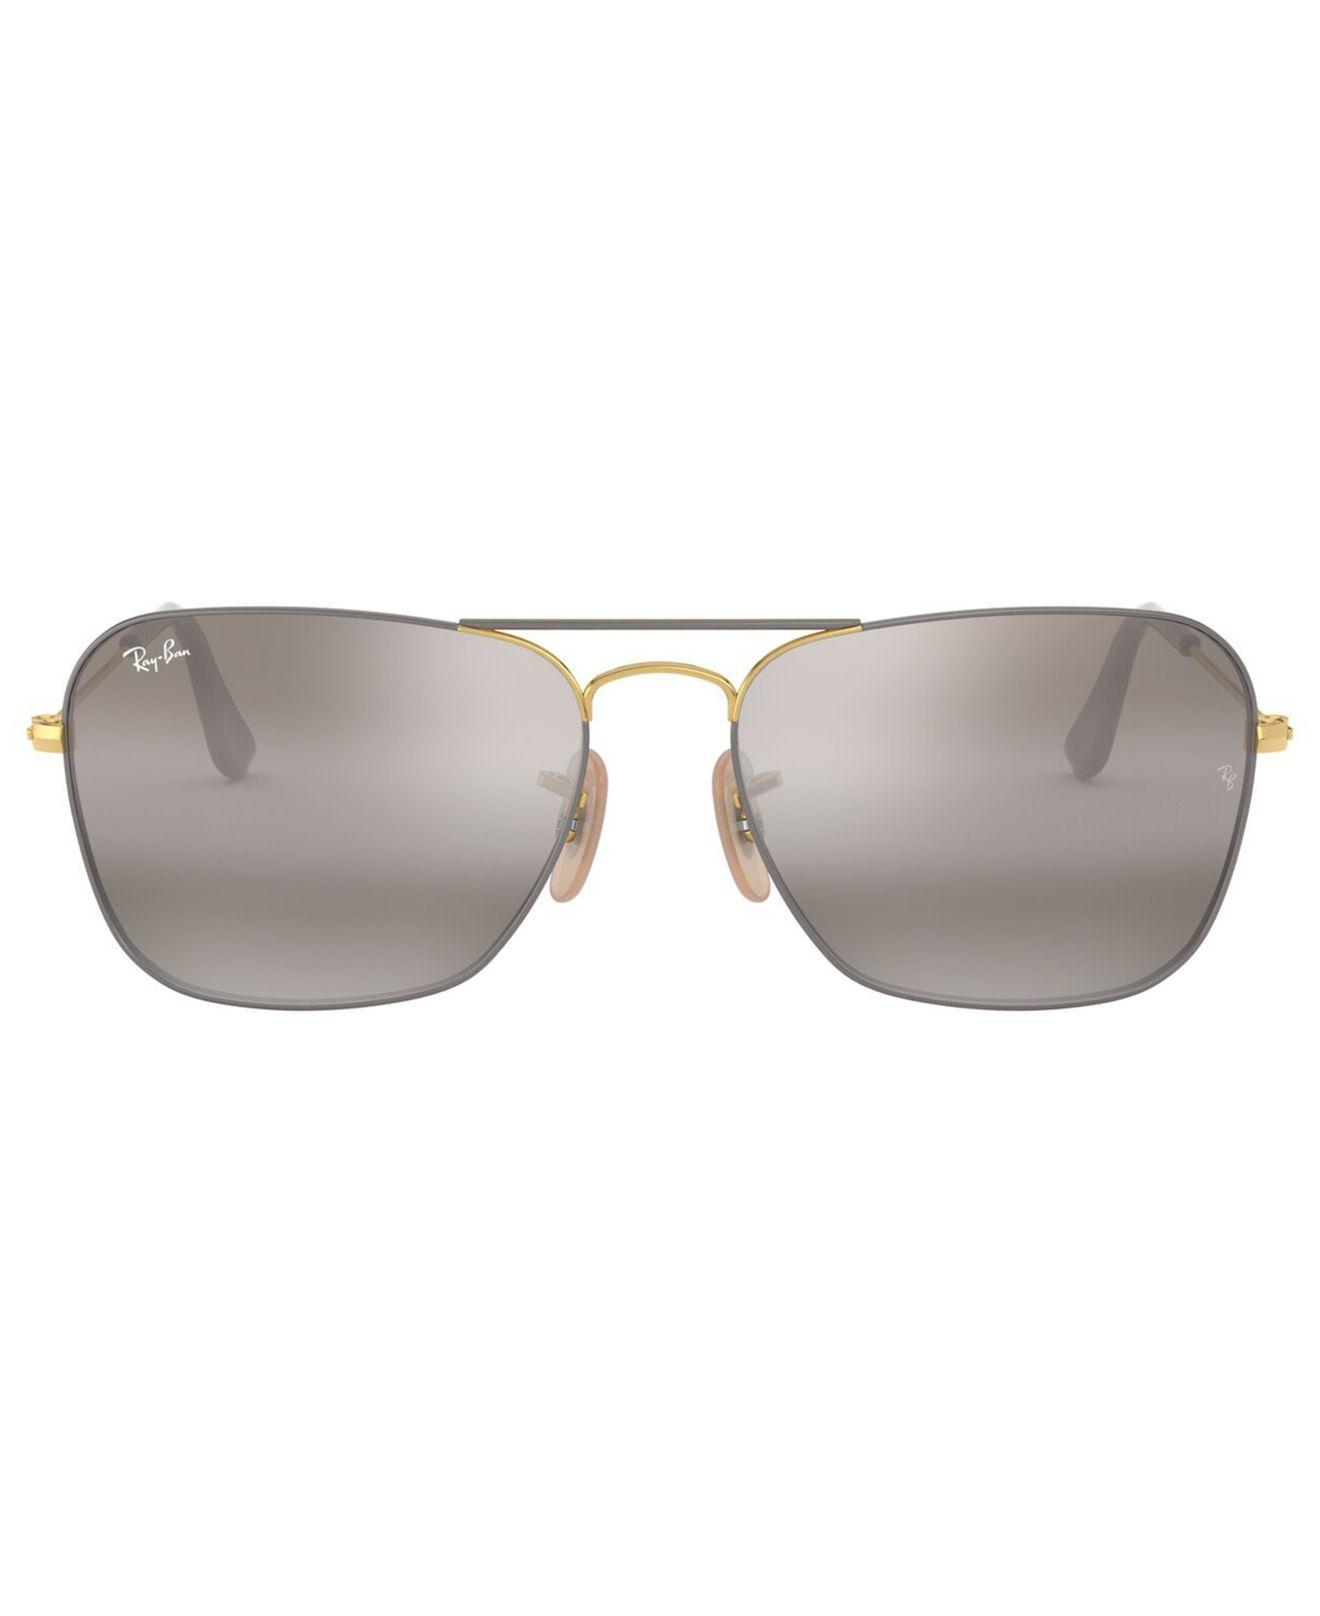 64c72e22cec1 Lyst - Ray-Ban Sunglasses, Rb3136 58 in Gray for Men